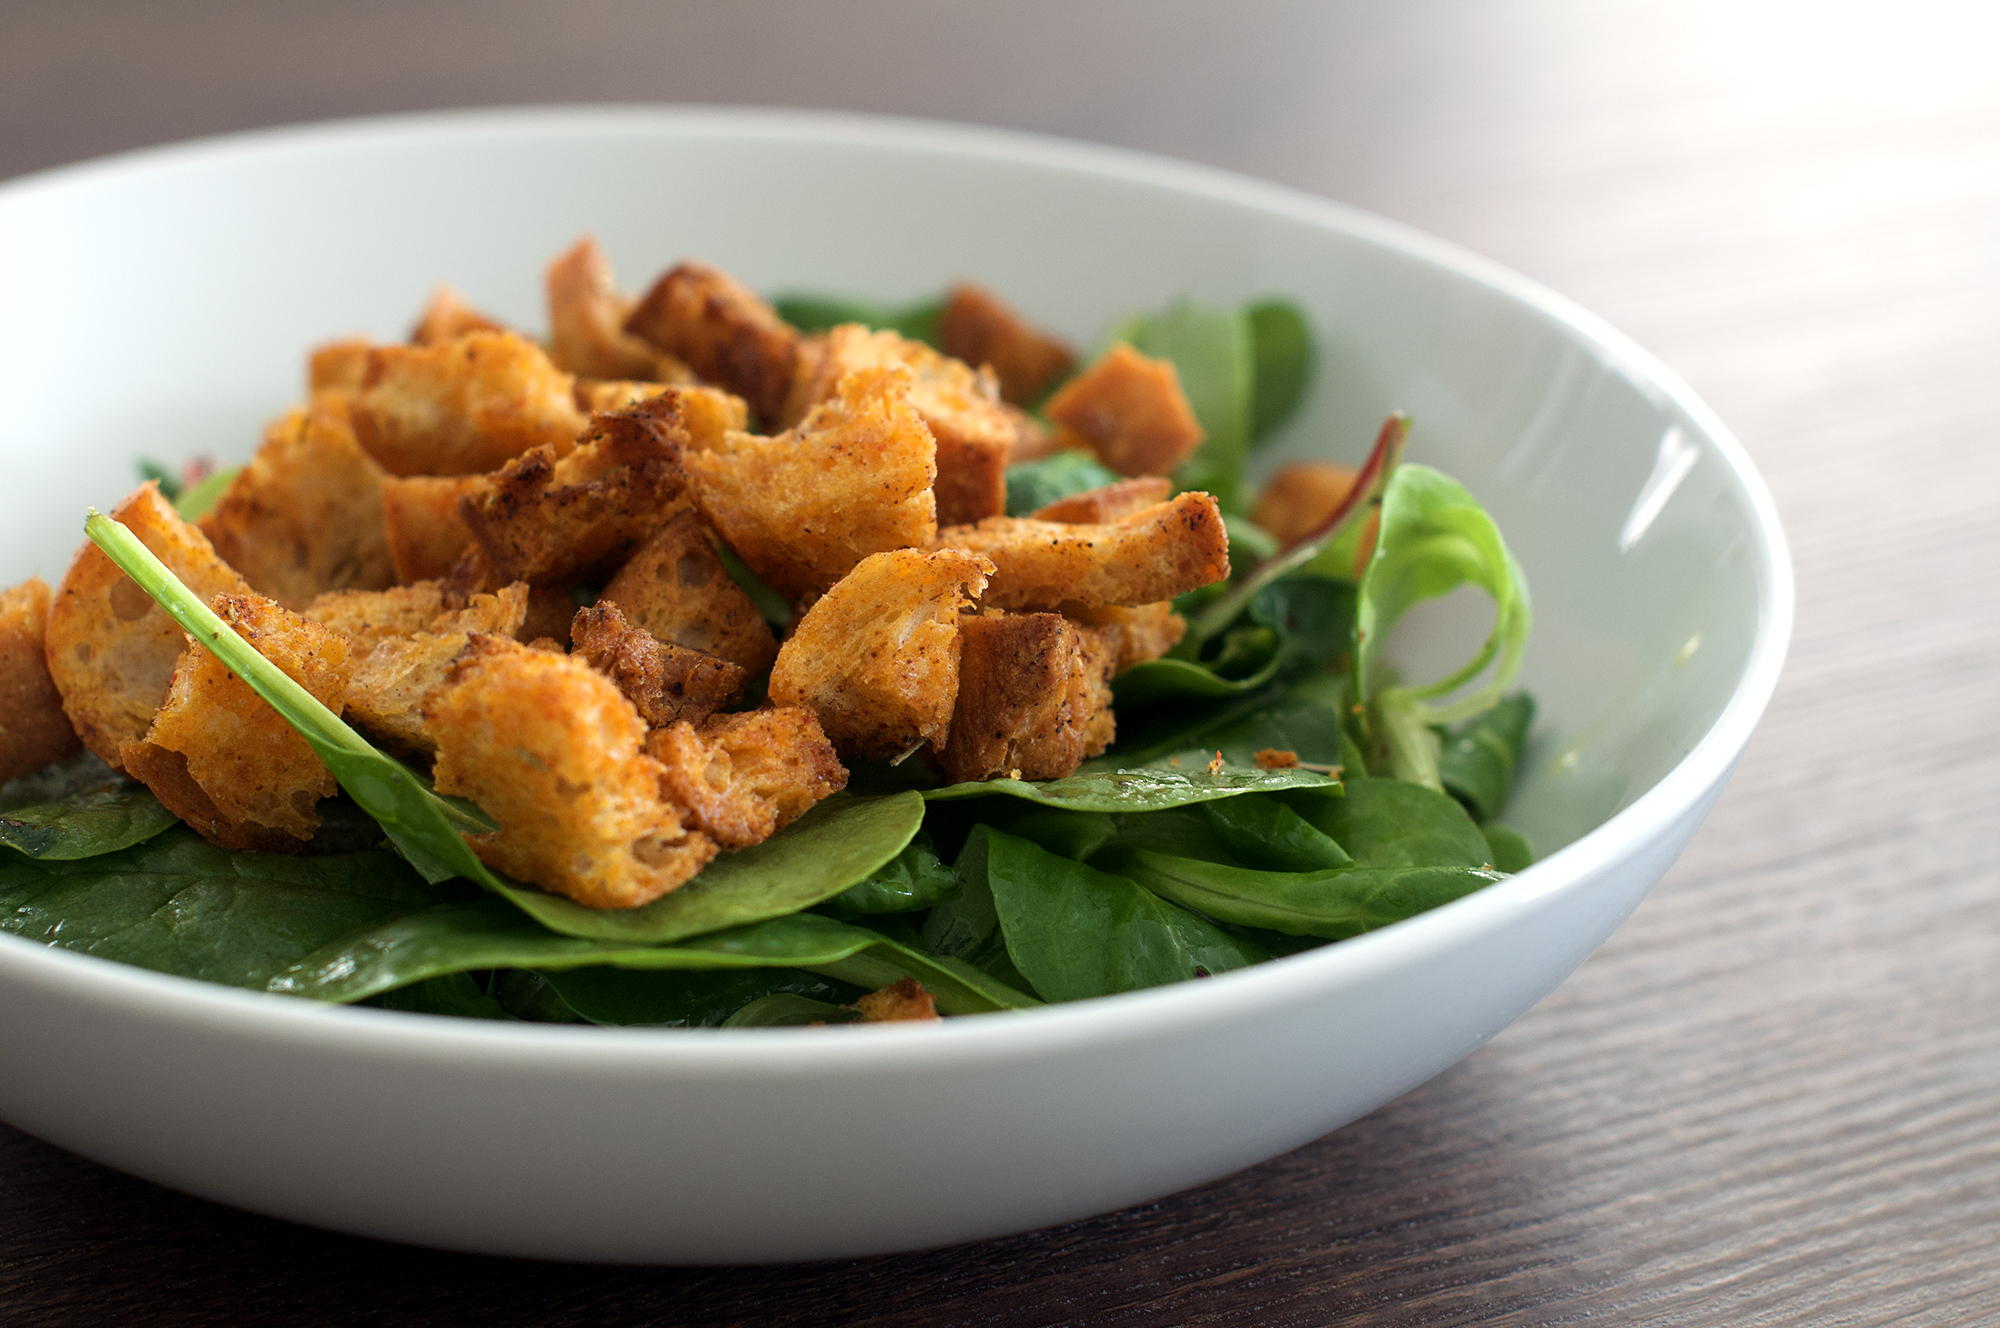 Recipe for crispy homemade paprika and rosemary croutons